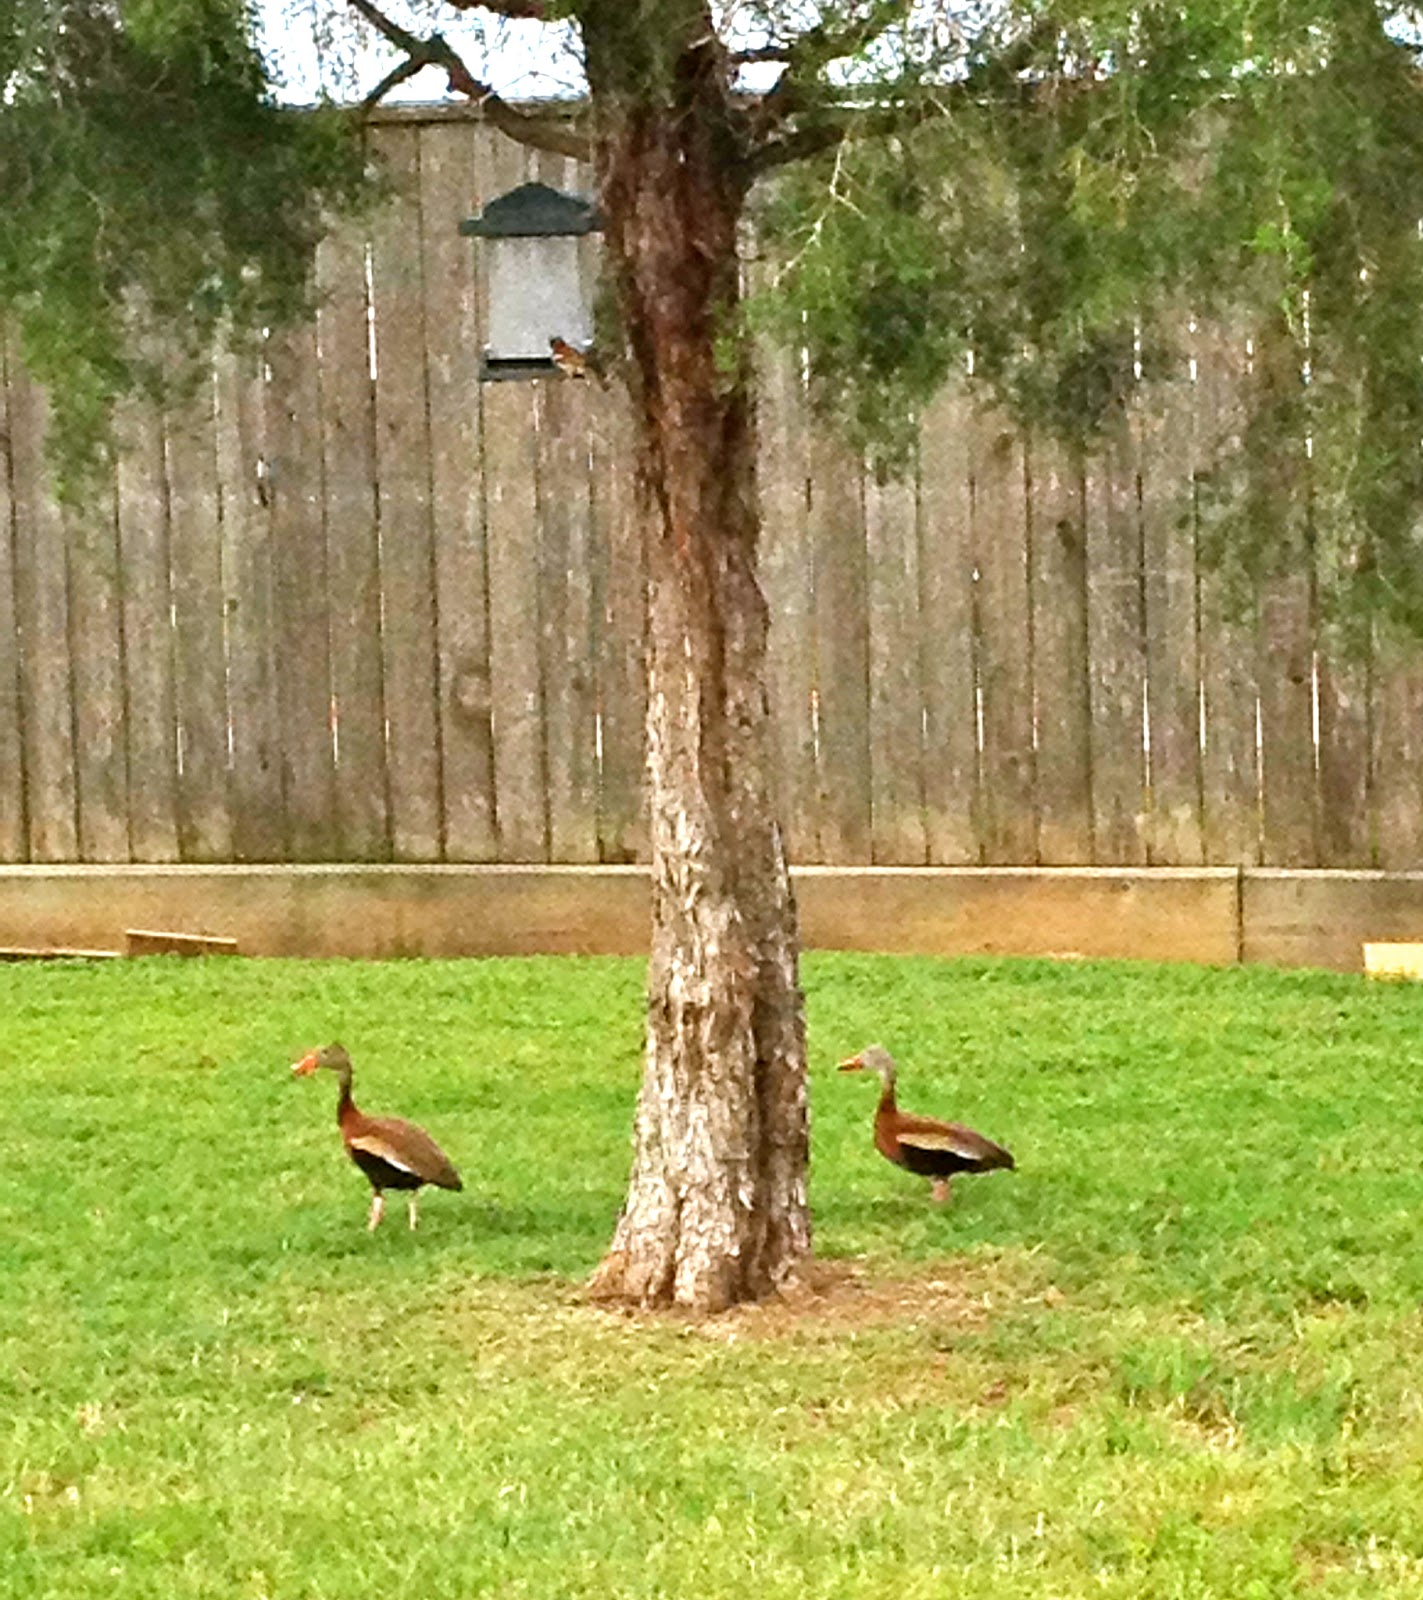 Backyard Bird Sanctuary: The Ringley Family Circus: How I Became The Crazy